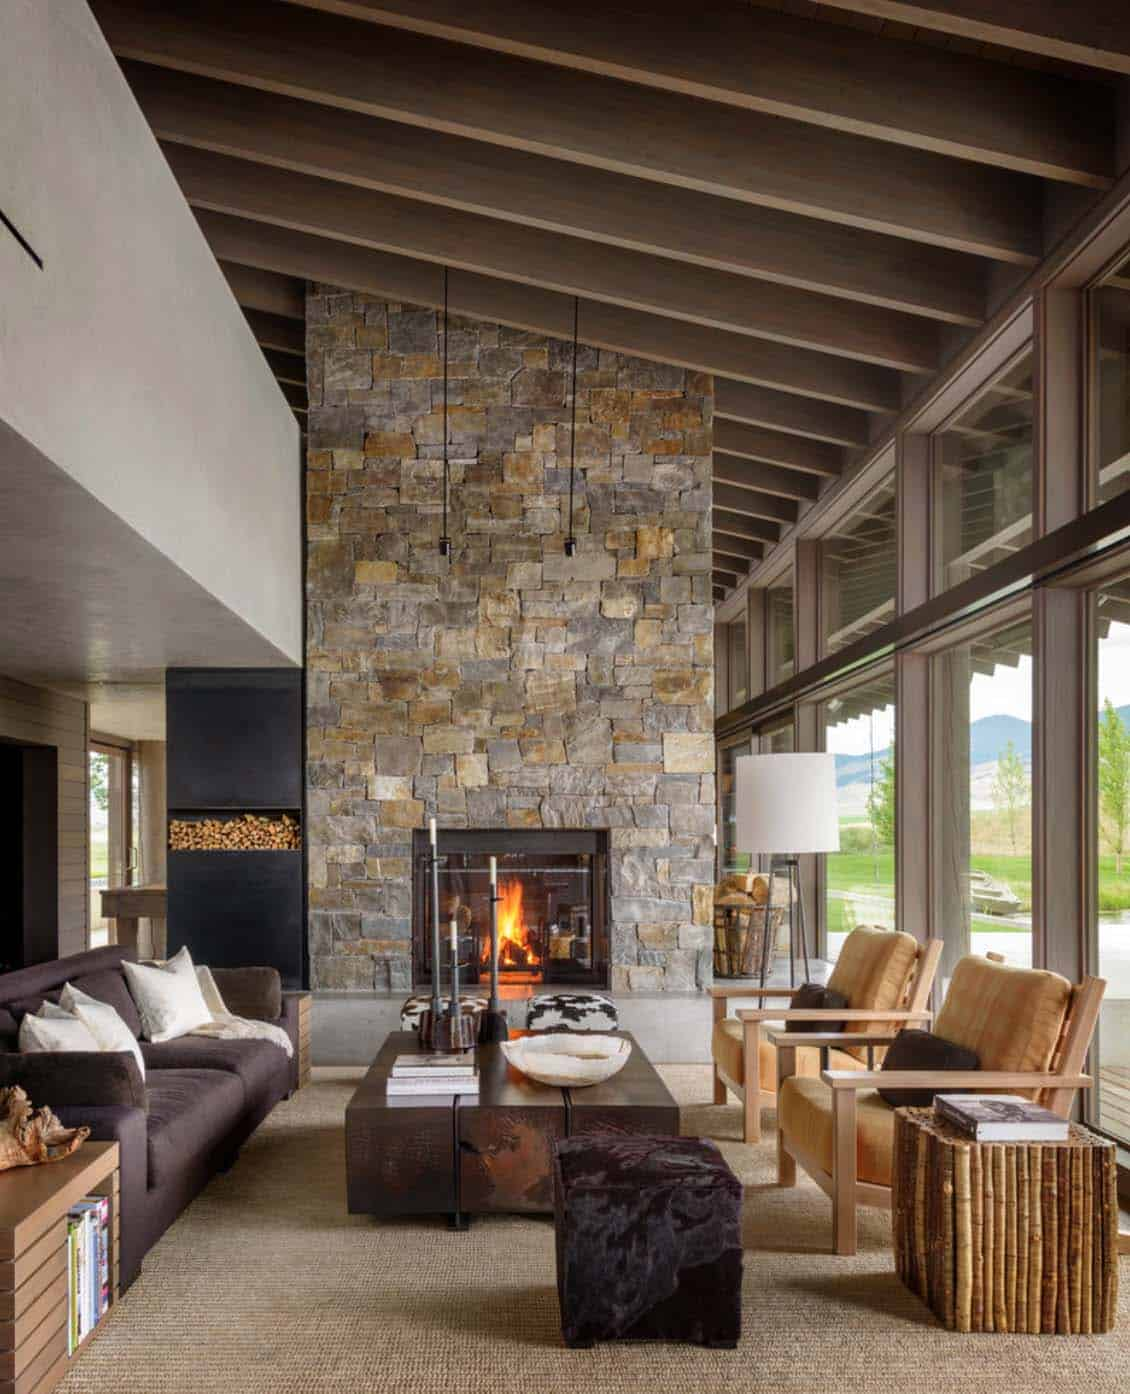 Montana Ranch House Embraces Its Striking River Valley